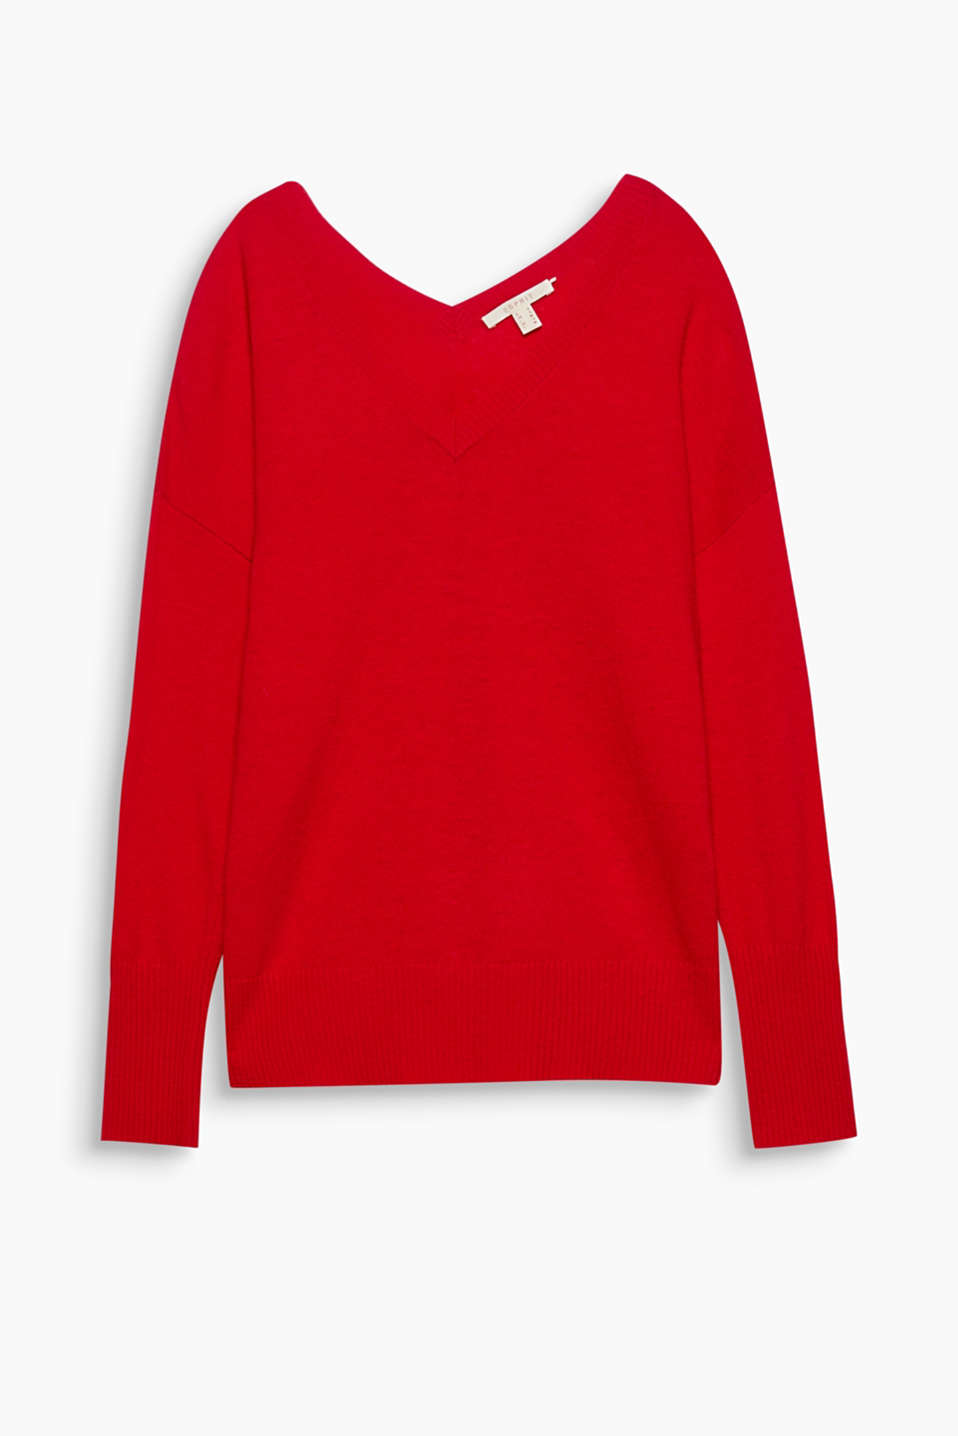 Twice as nice: this casual jumper looks ultra-modern with its two stylish v-necklines